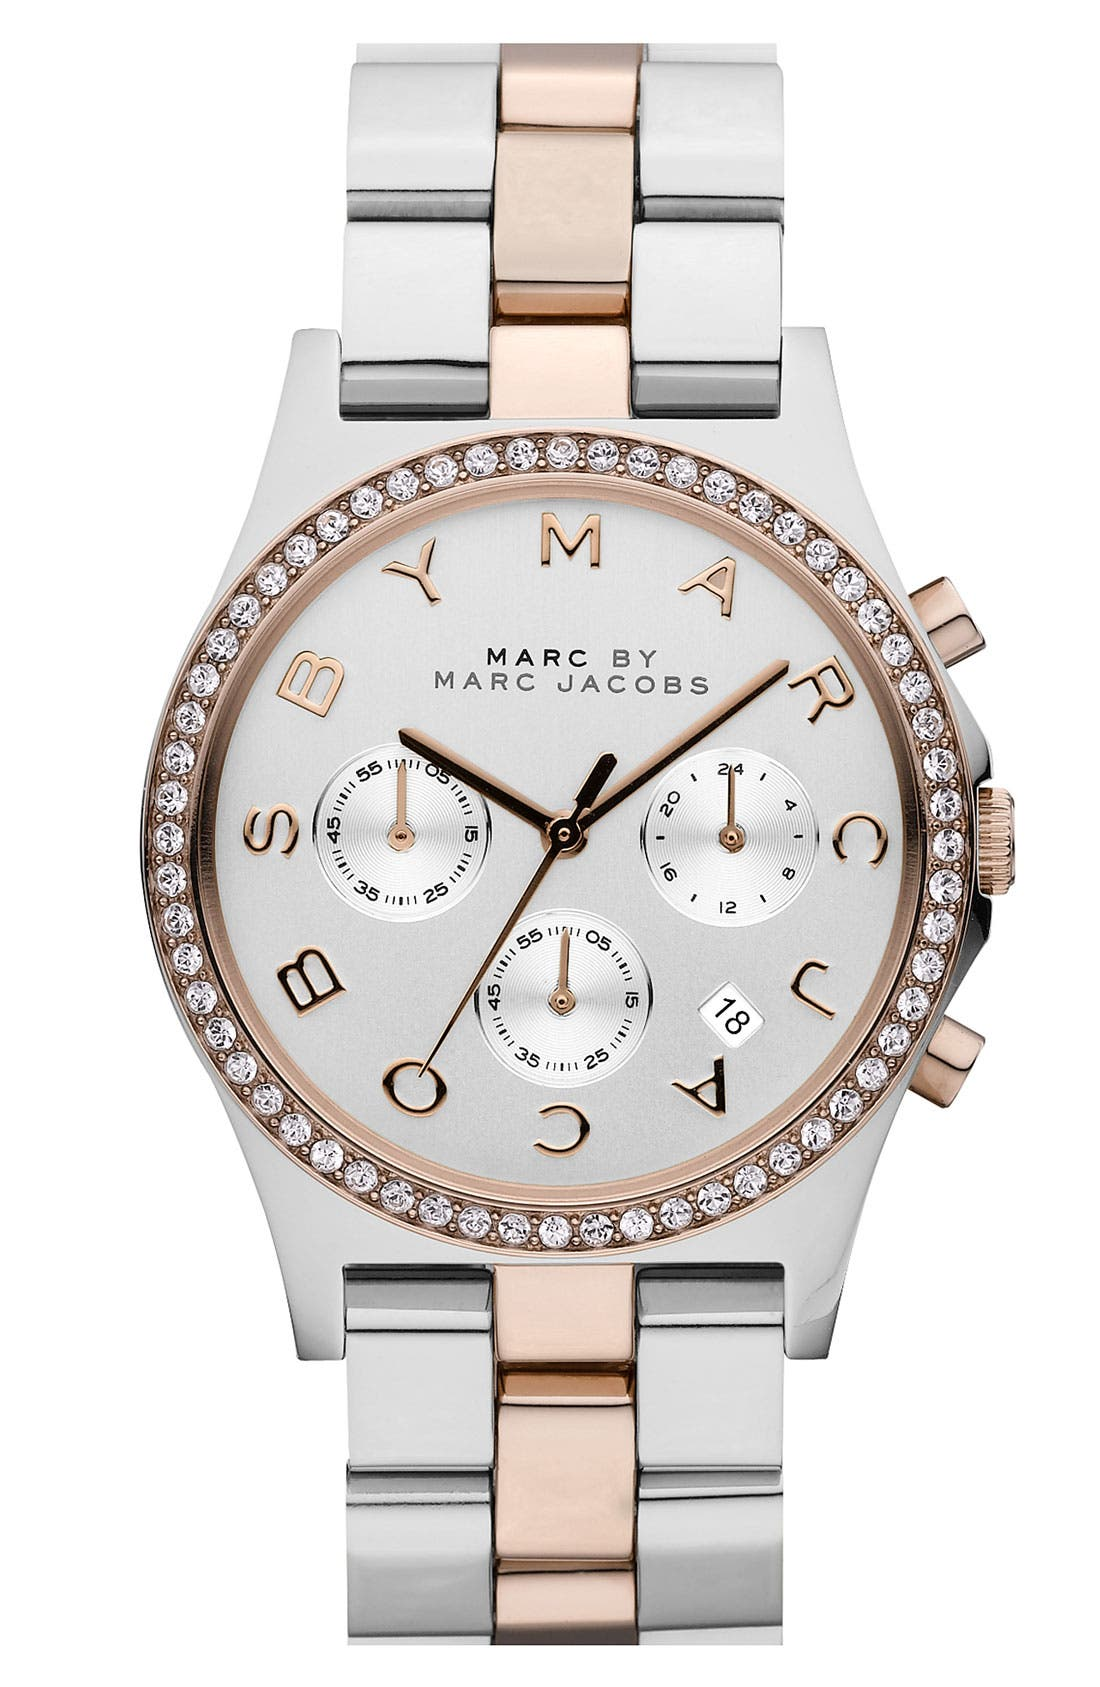 Alternate Image 1 Selected - MARC JACOBS 'Henry' Chronograph & Crystal Topring Watch, 40mm